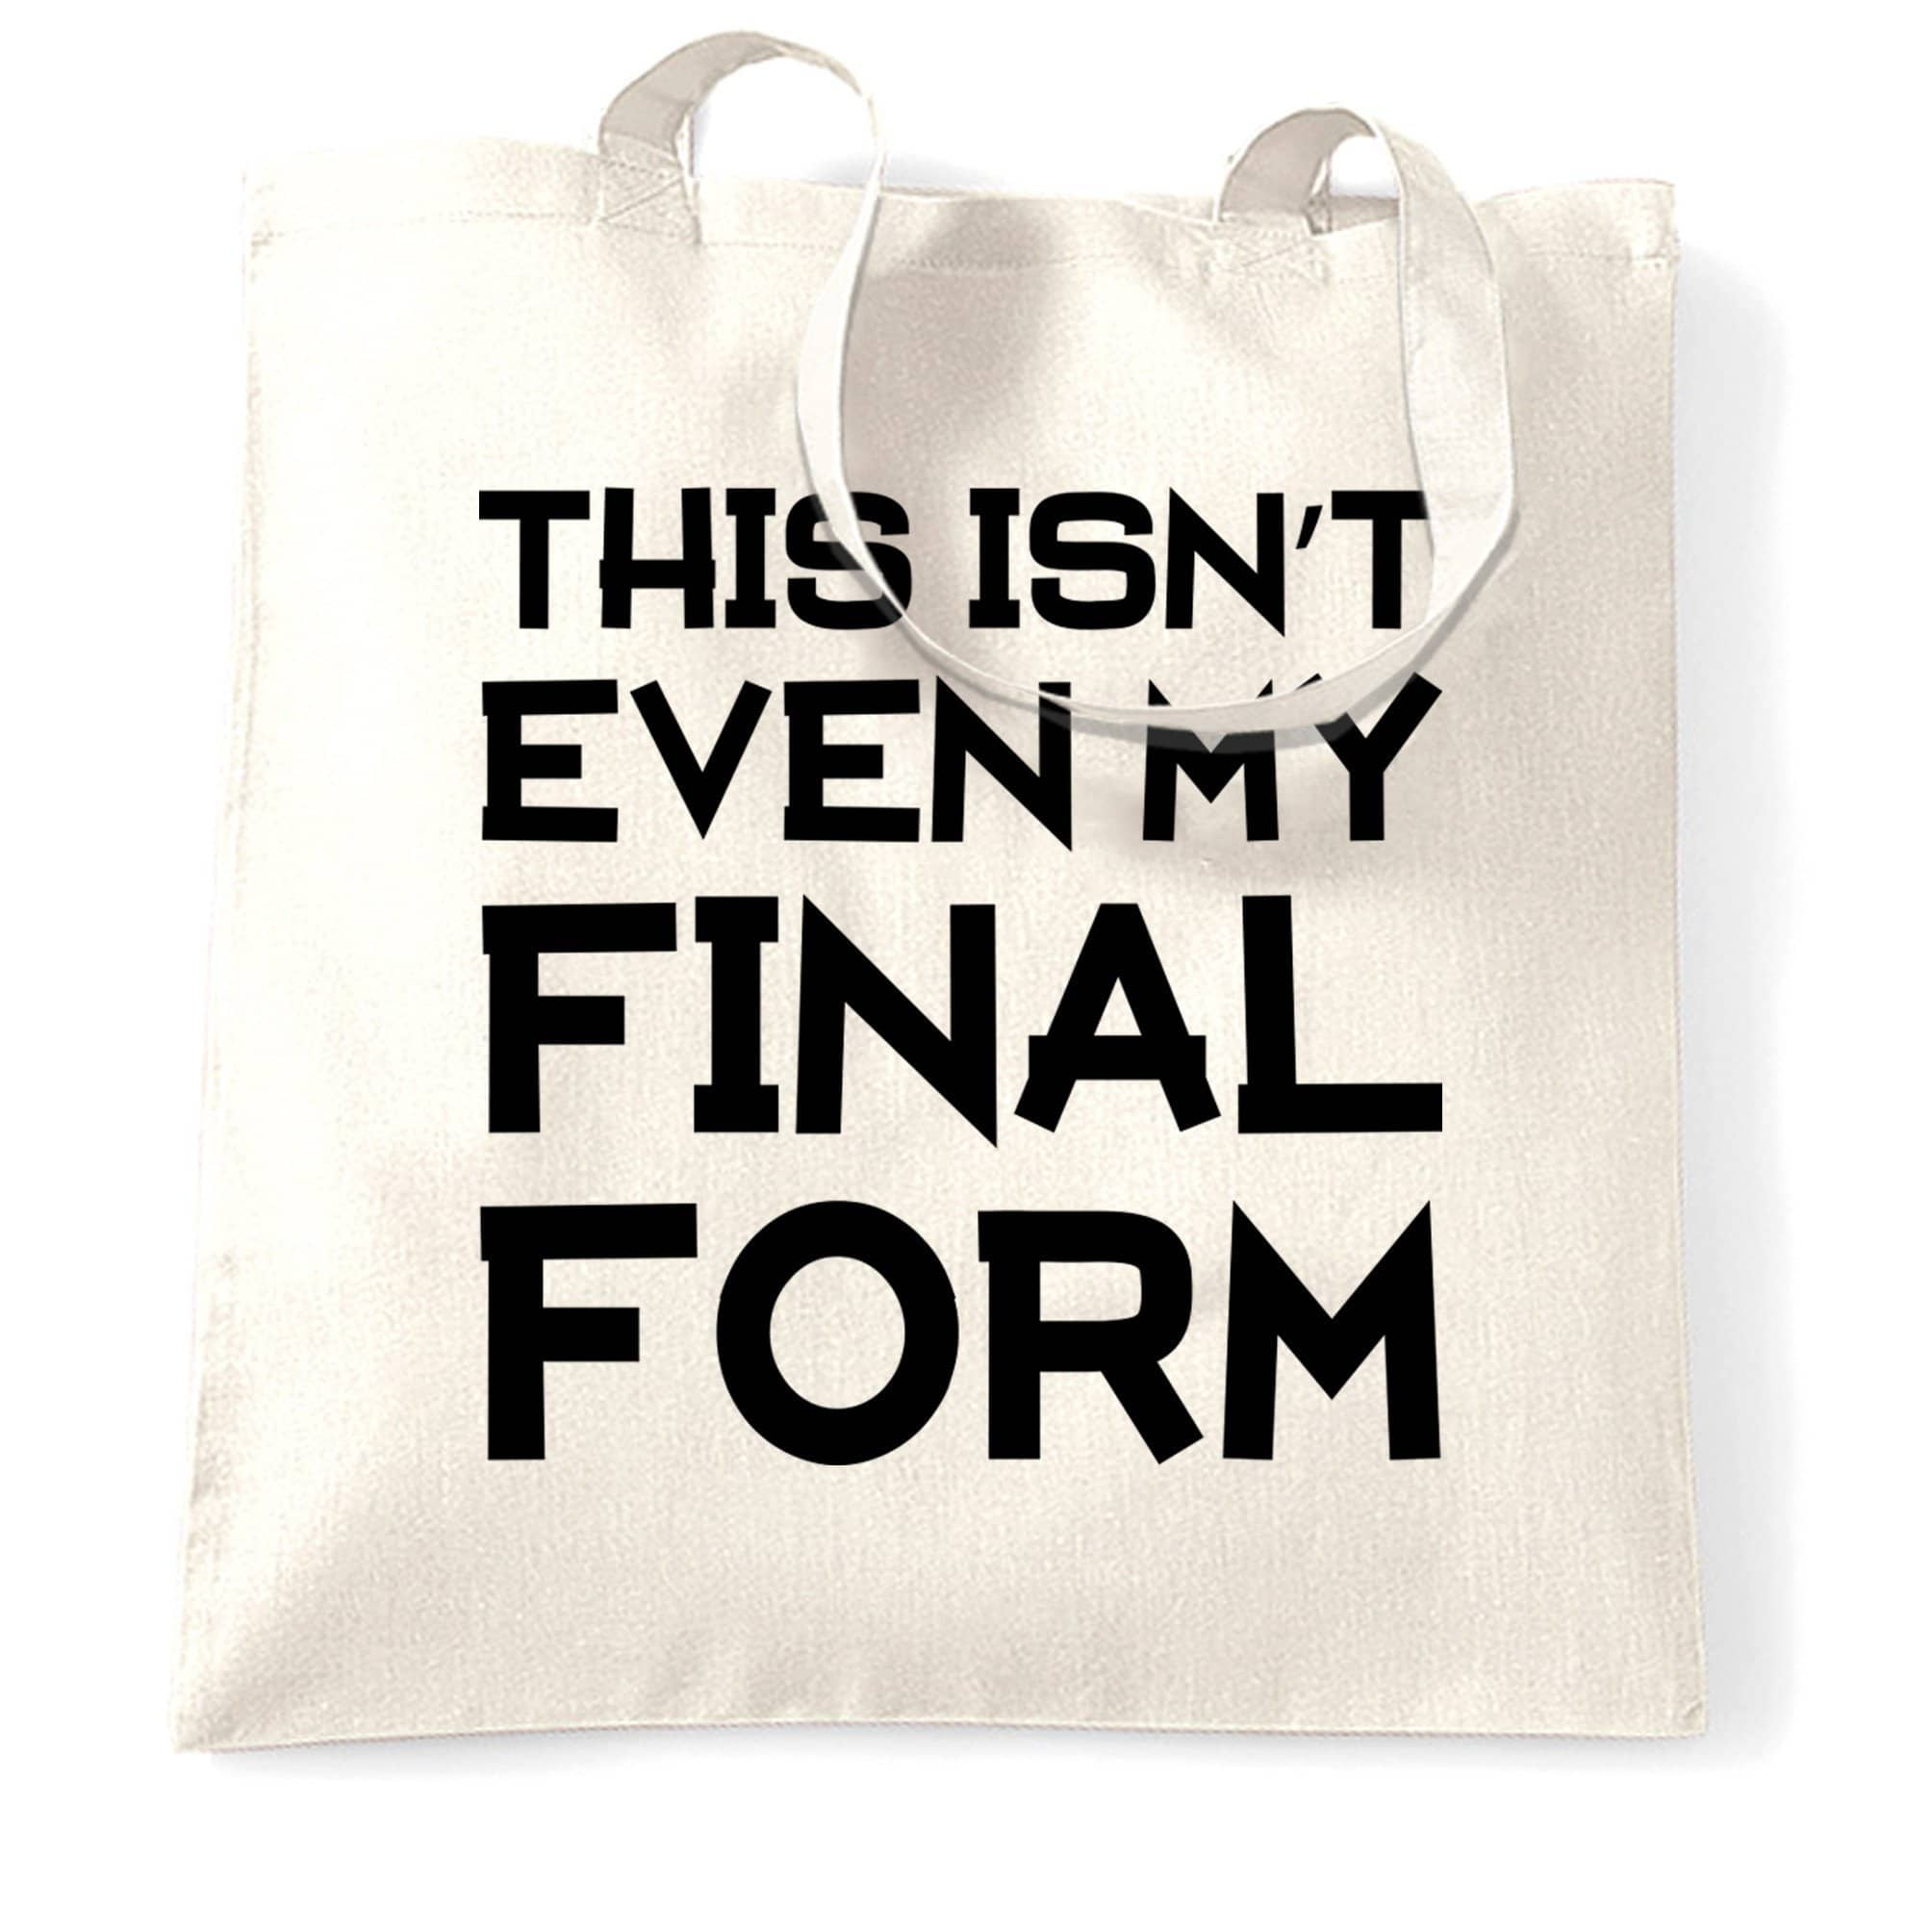 Anime Parody Tote Bag This Isn't Even My Final Form